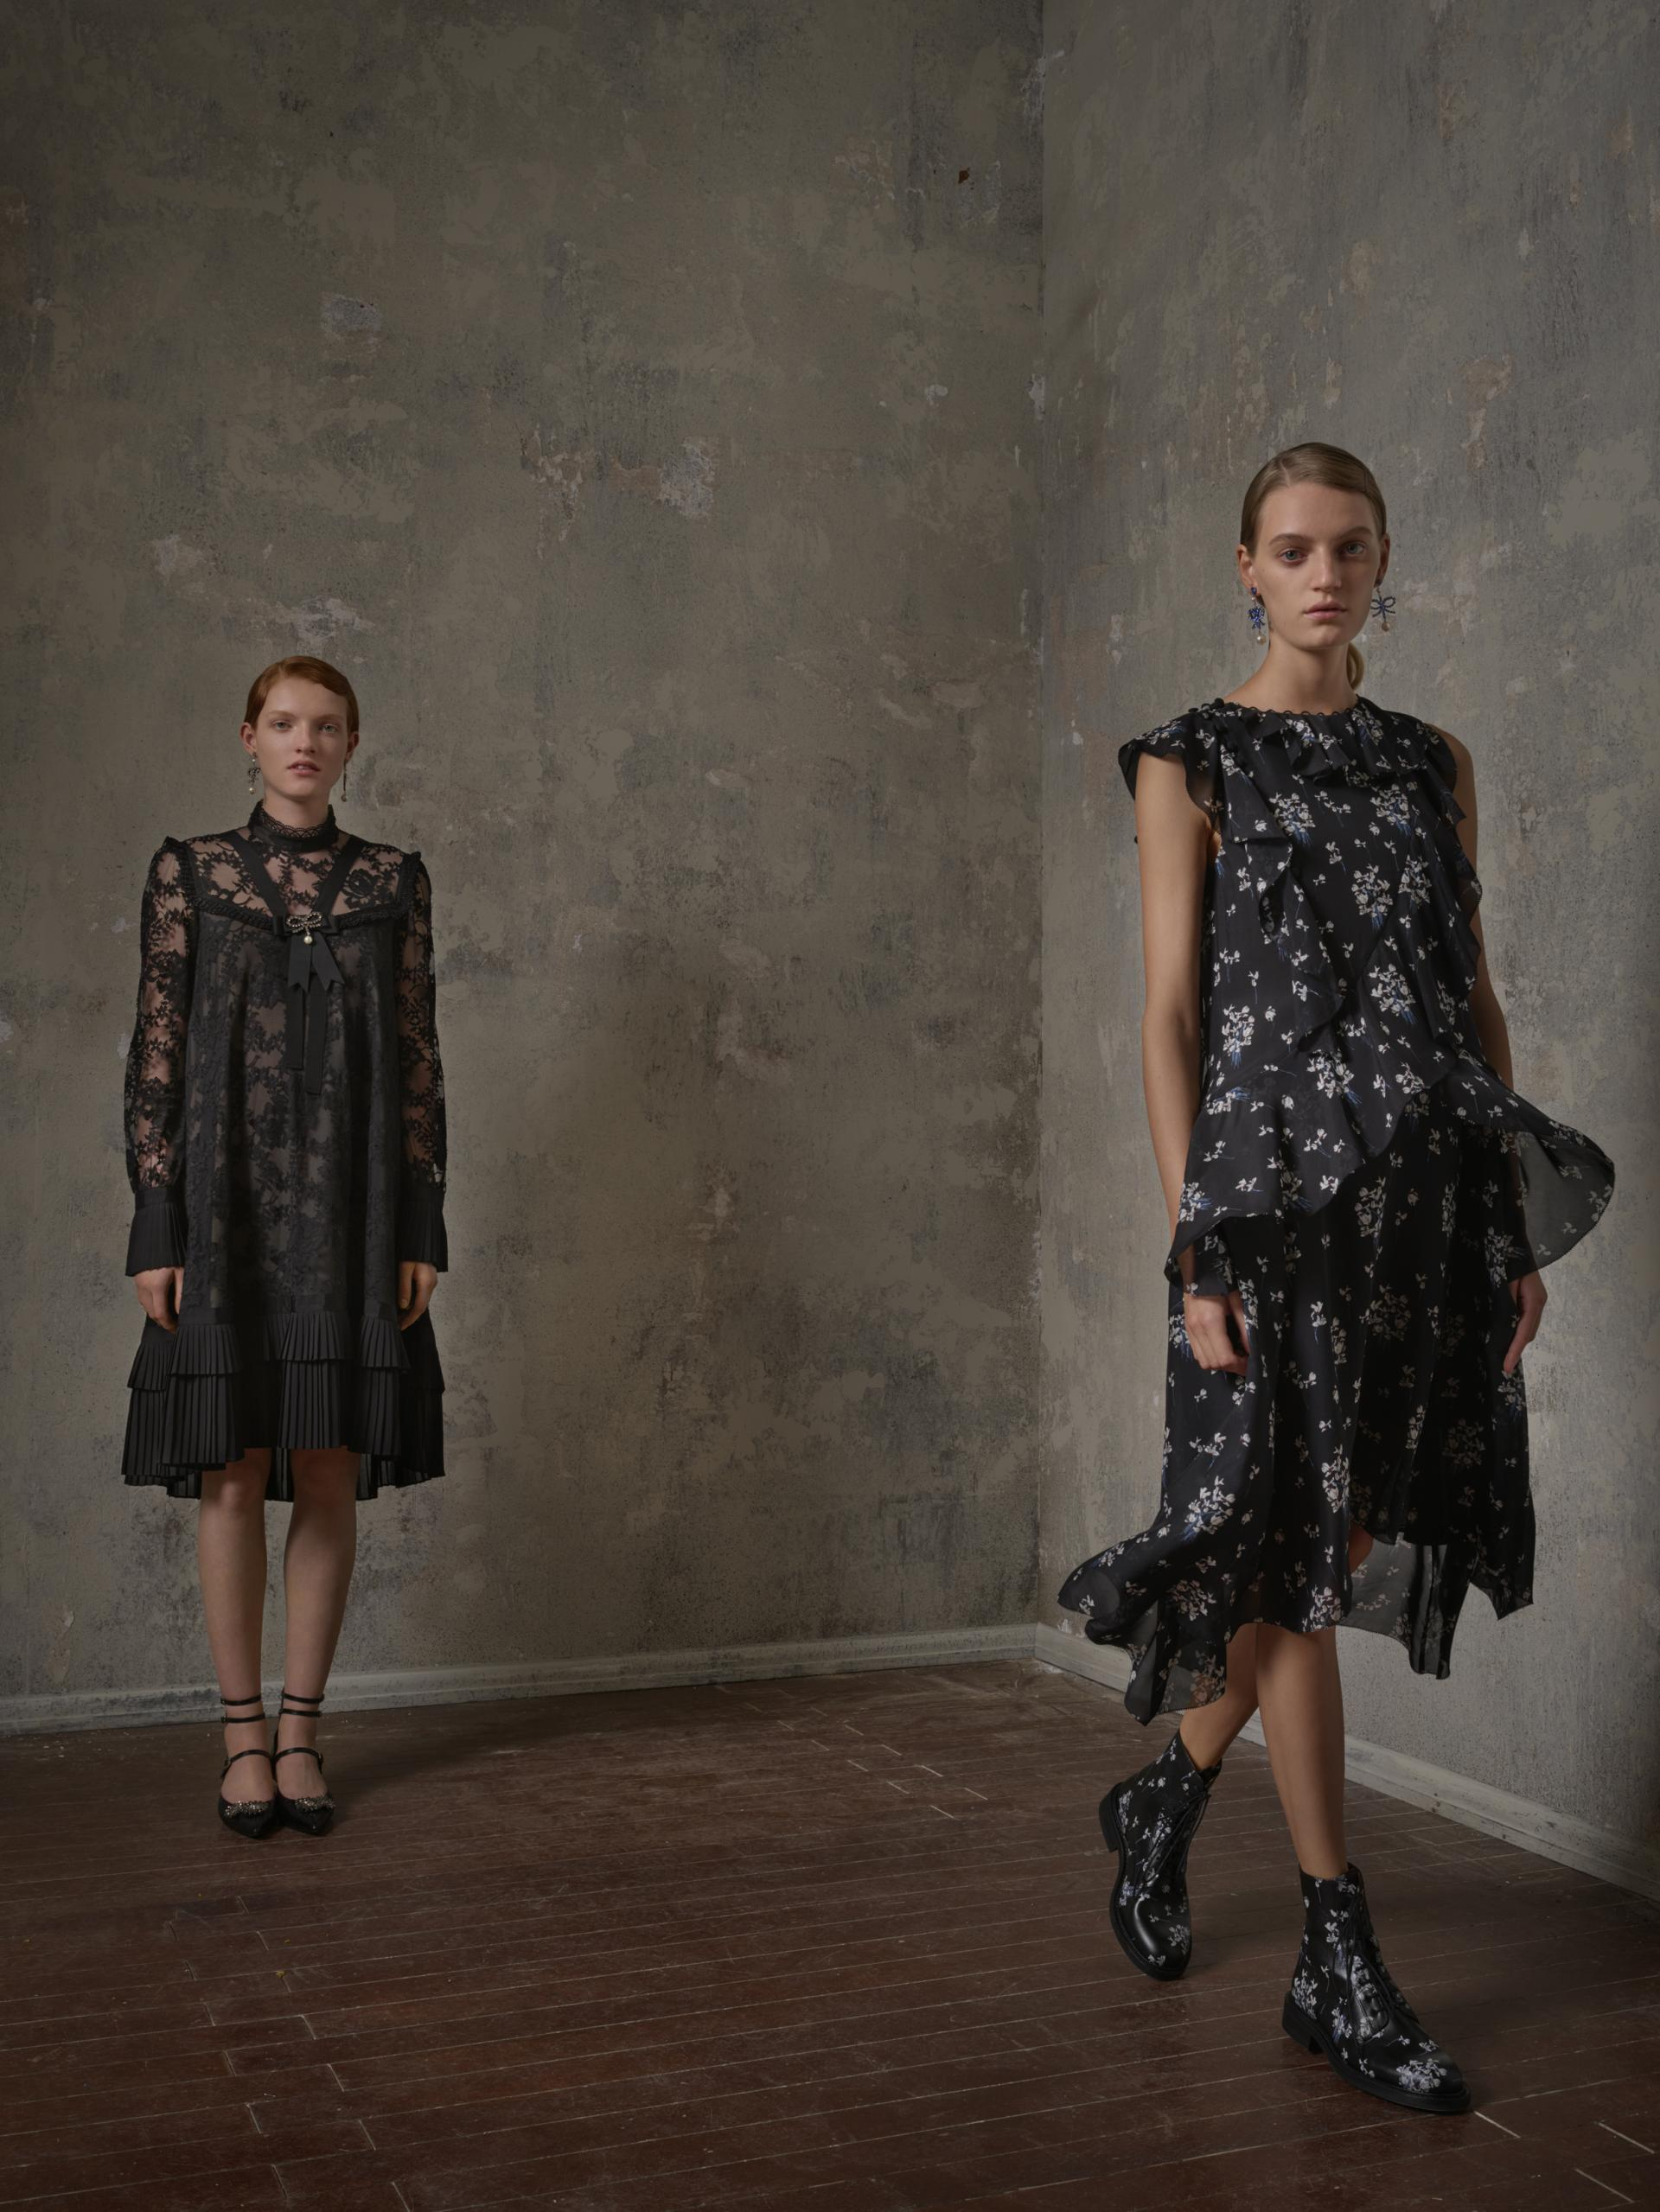 Erdem Collaboration with H&M